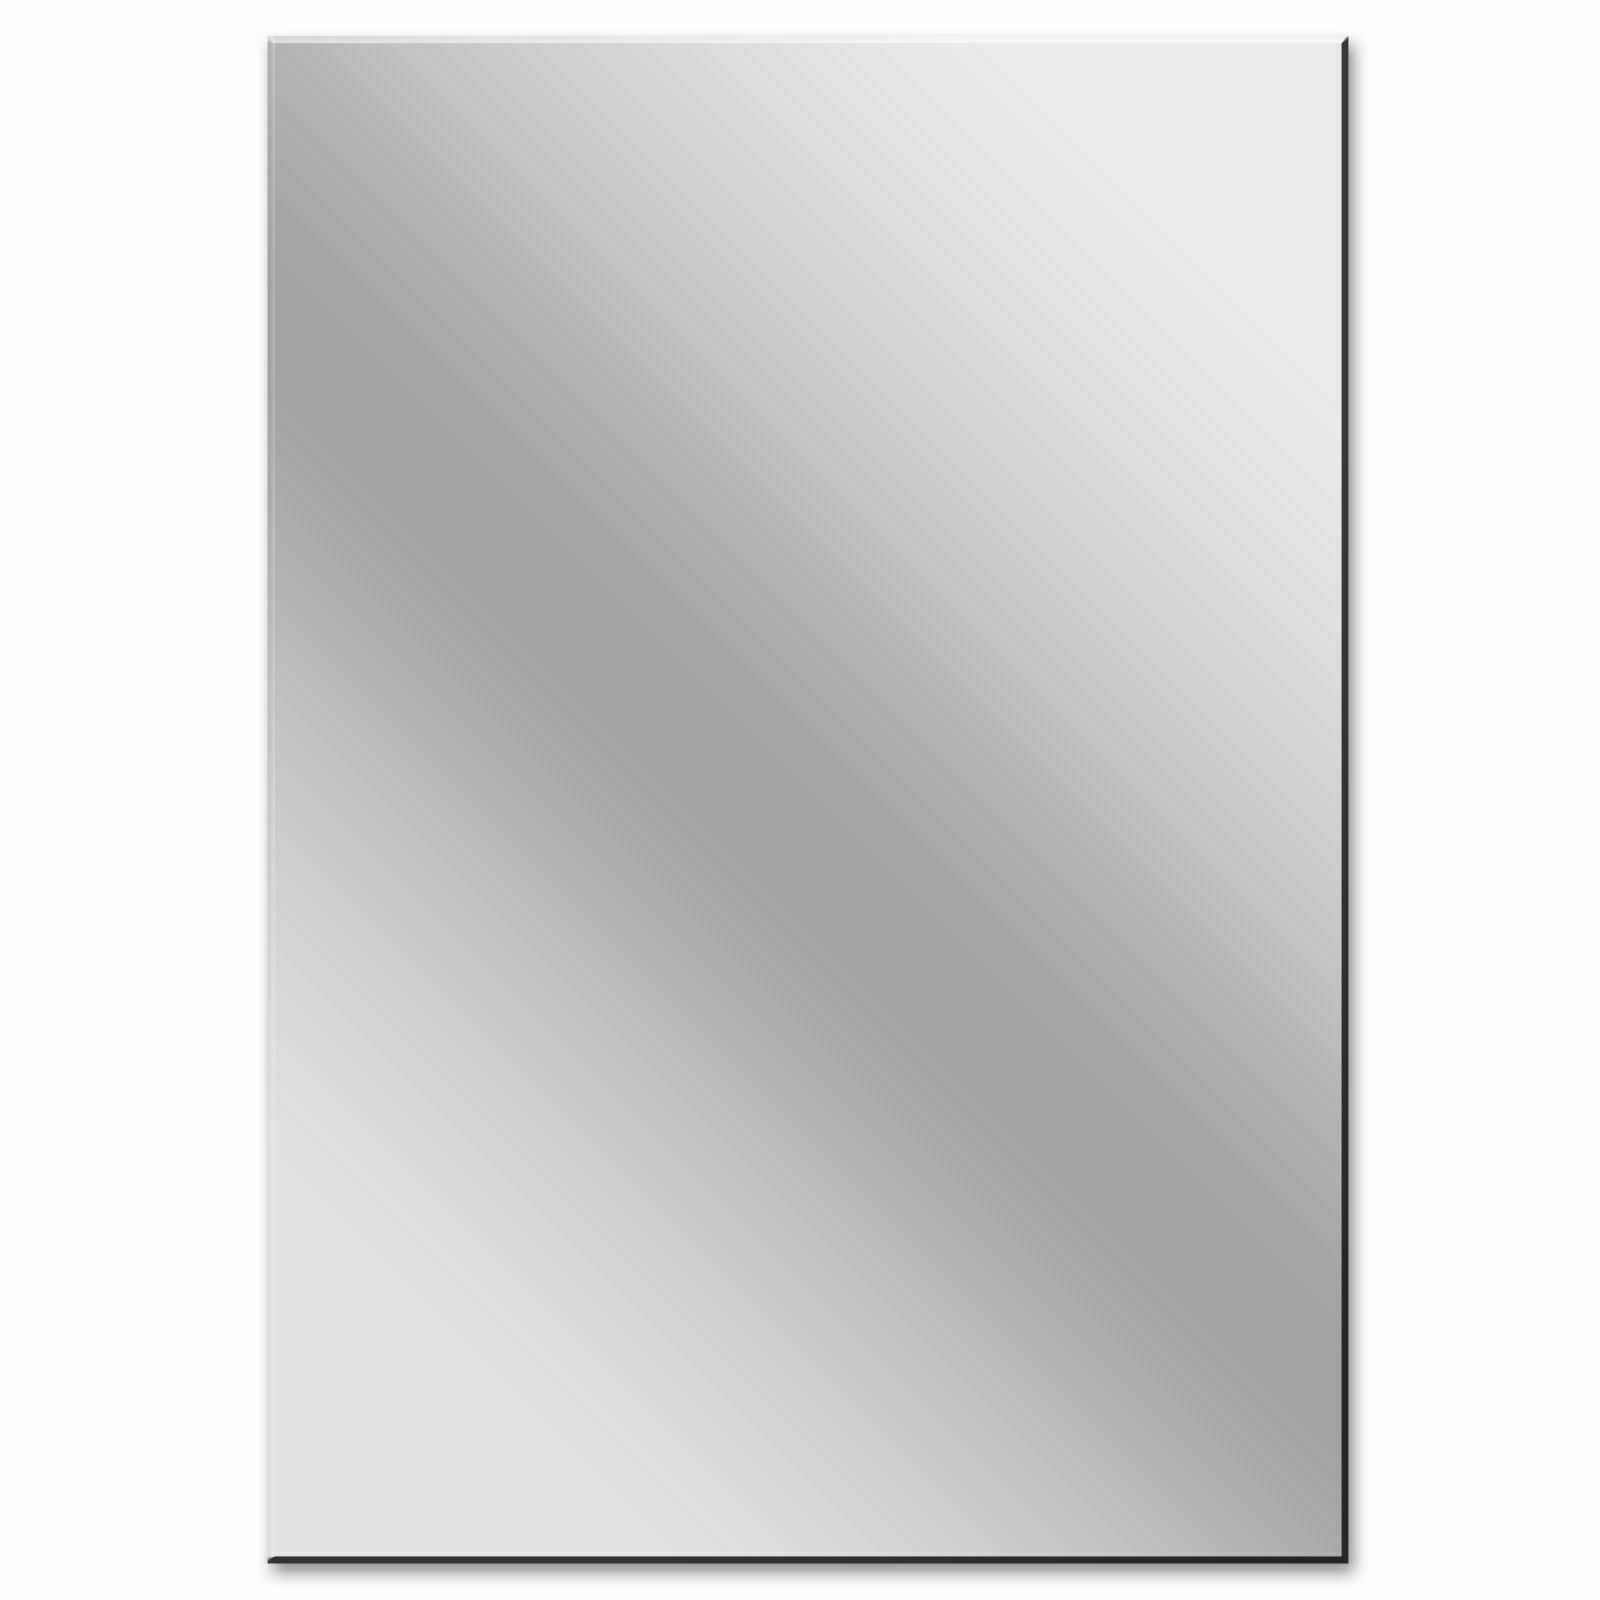 PERSPEX MIRROR SHEET 1200MM X 810MM X 4MM EXCELLENT REFLECTION IDEAL FOR GYM'S